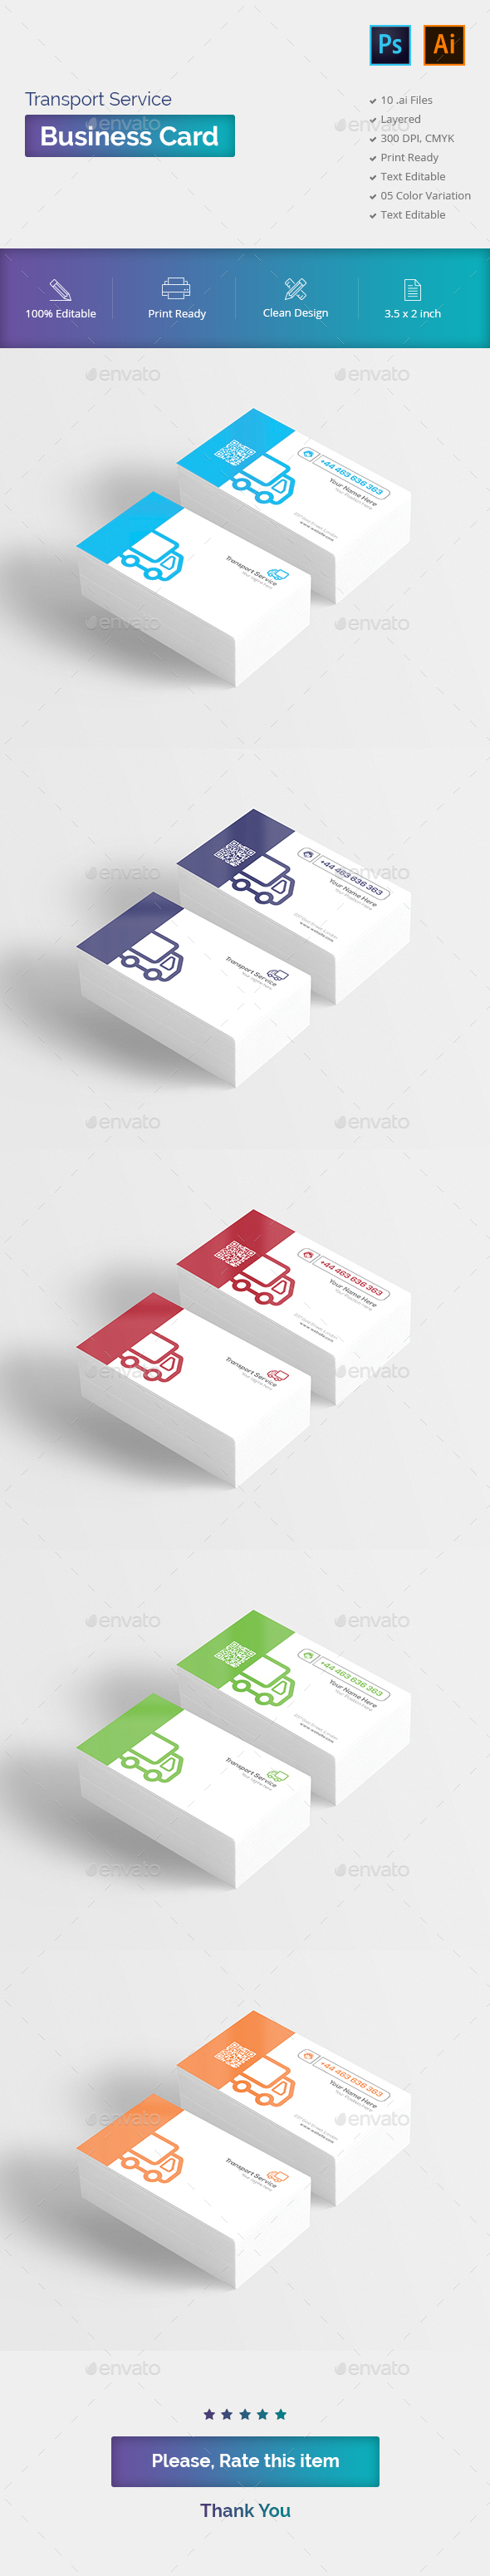 Transport Service Business Card - Business Cards Print Templates